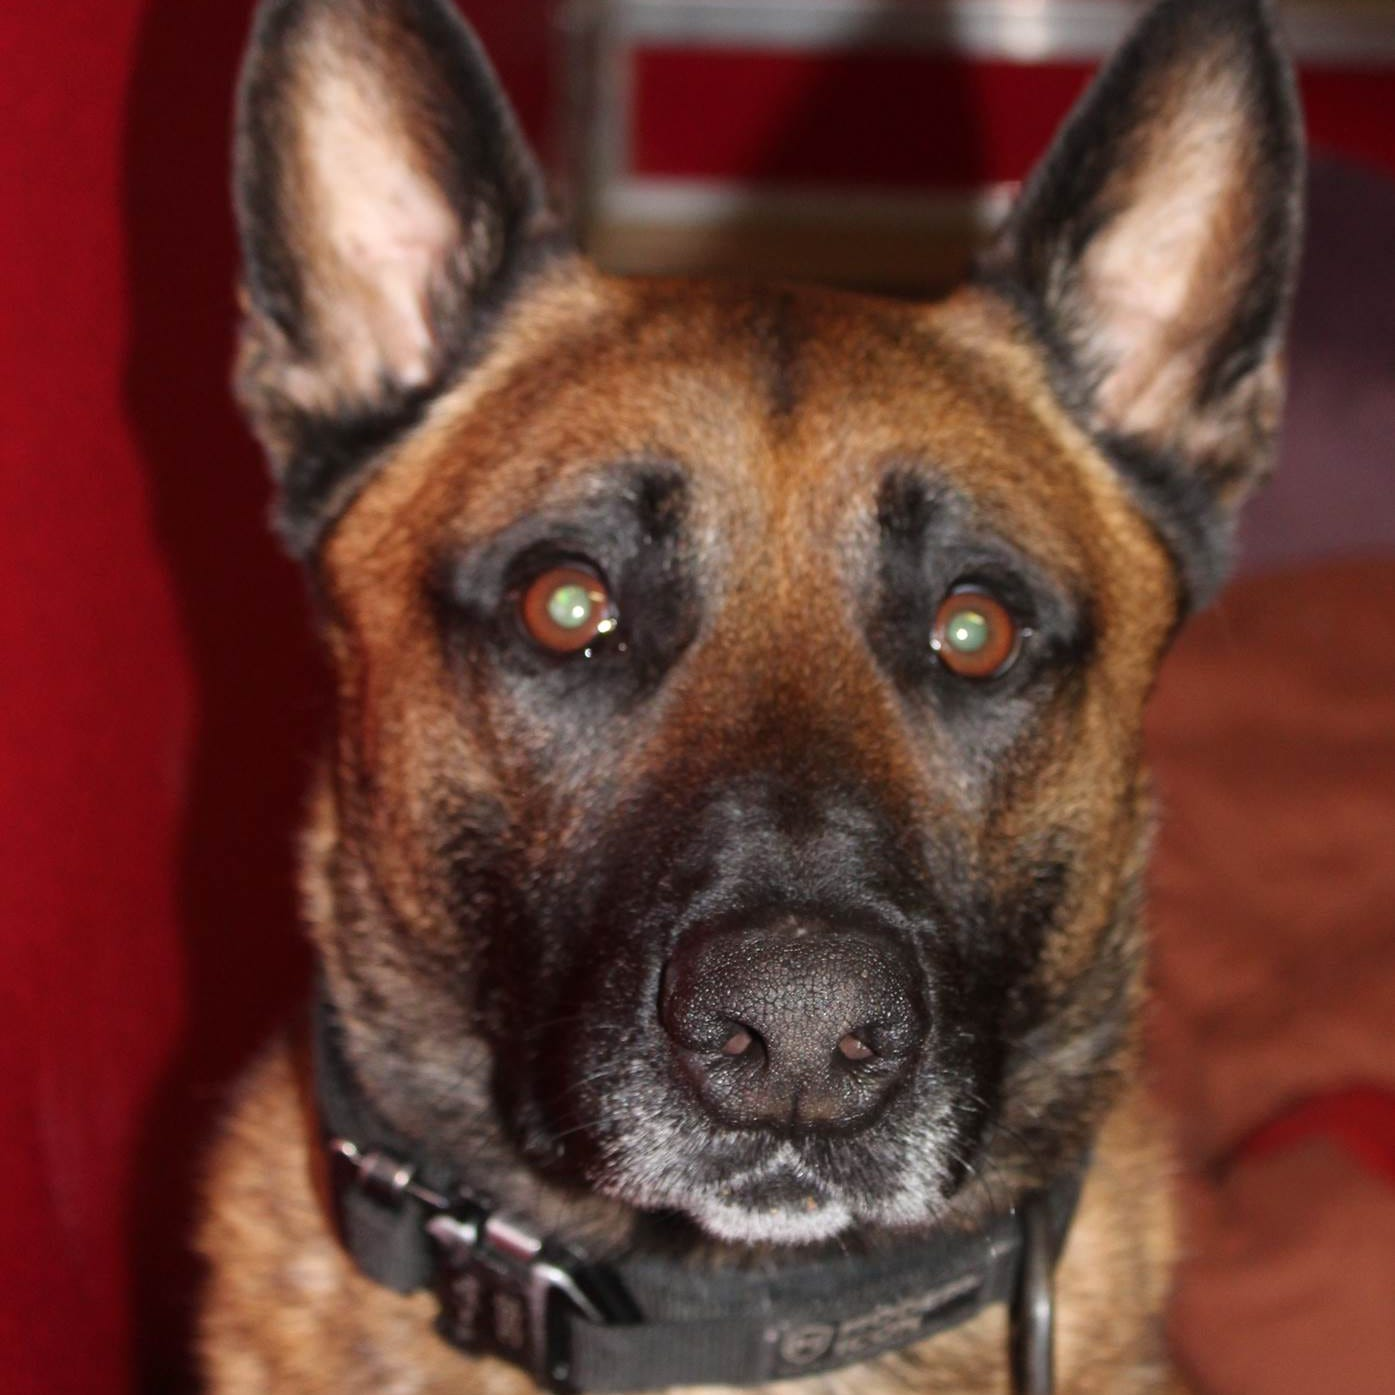 Deputy had troubled history at previous job with dog injured in his care at sheriff's office